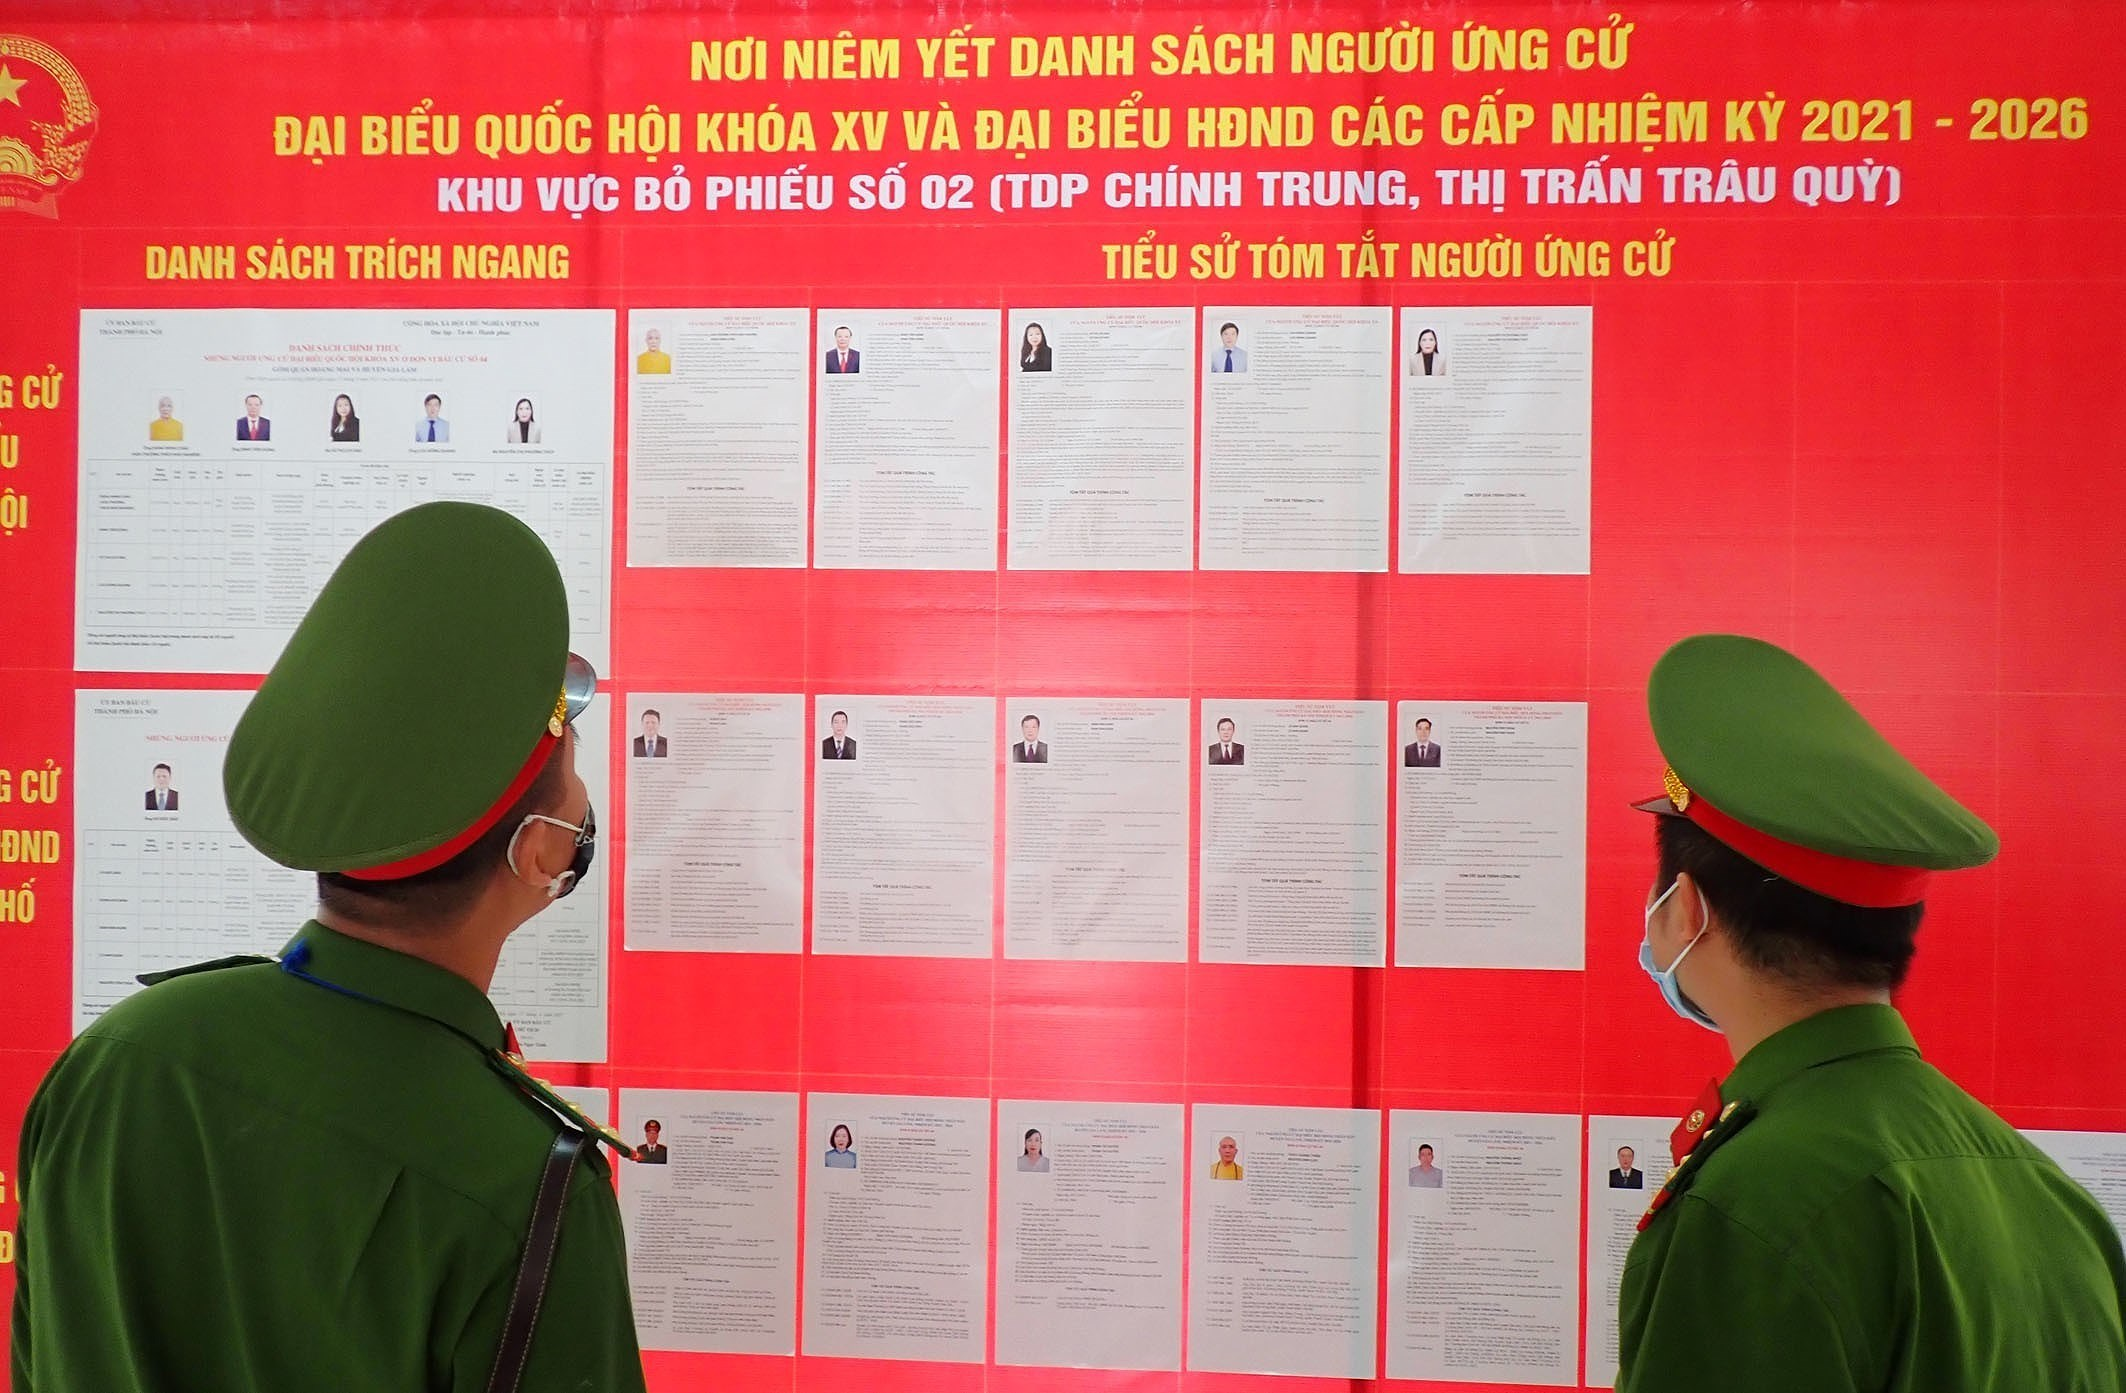 Hanoi's police ensures security, order for election day hinh anh 4